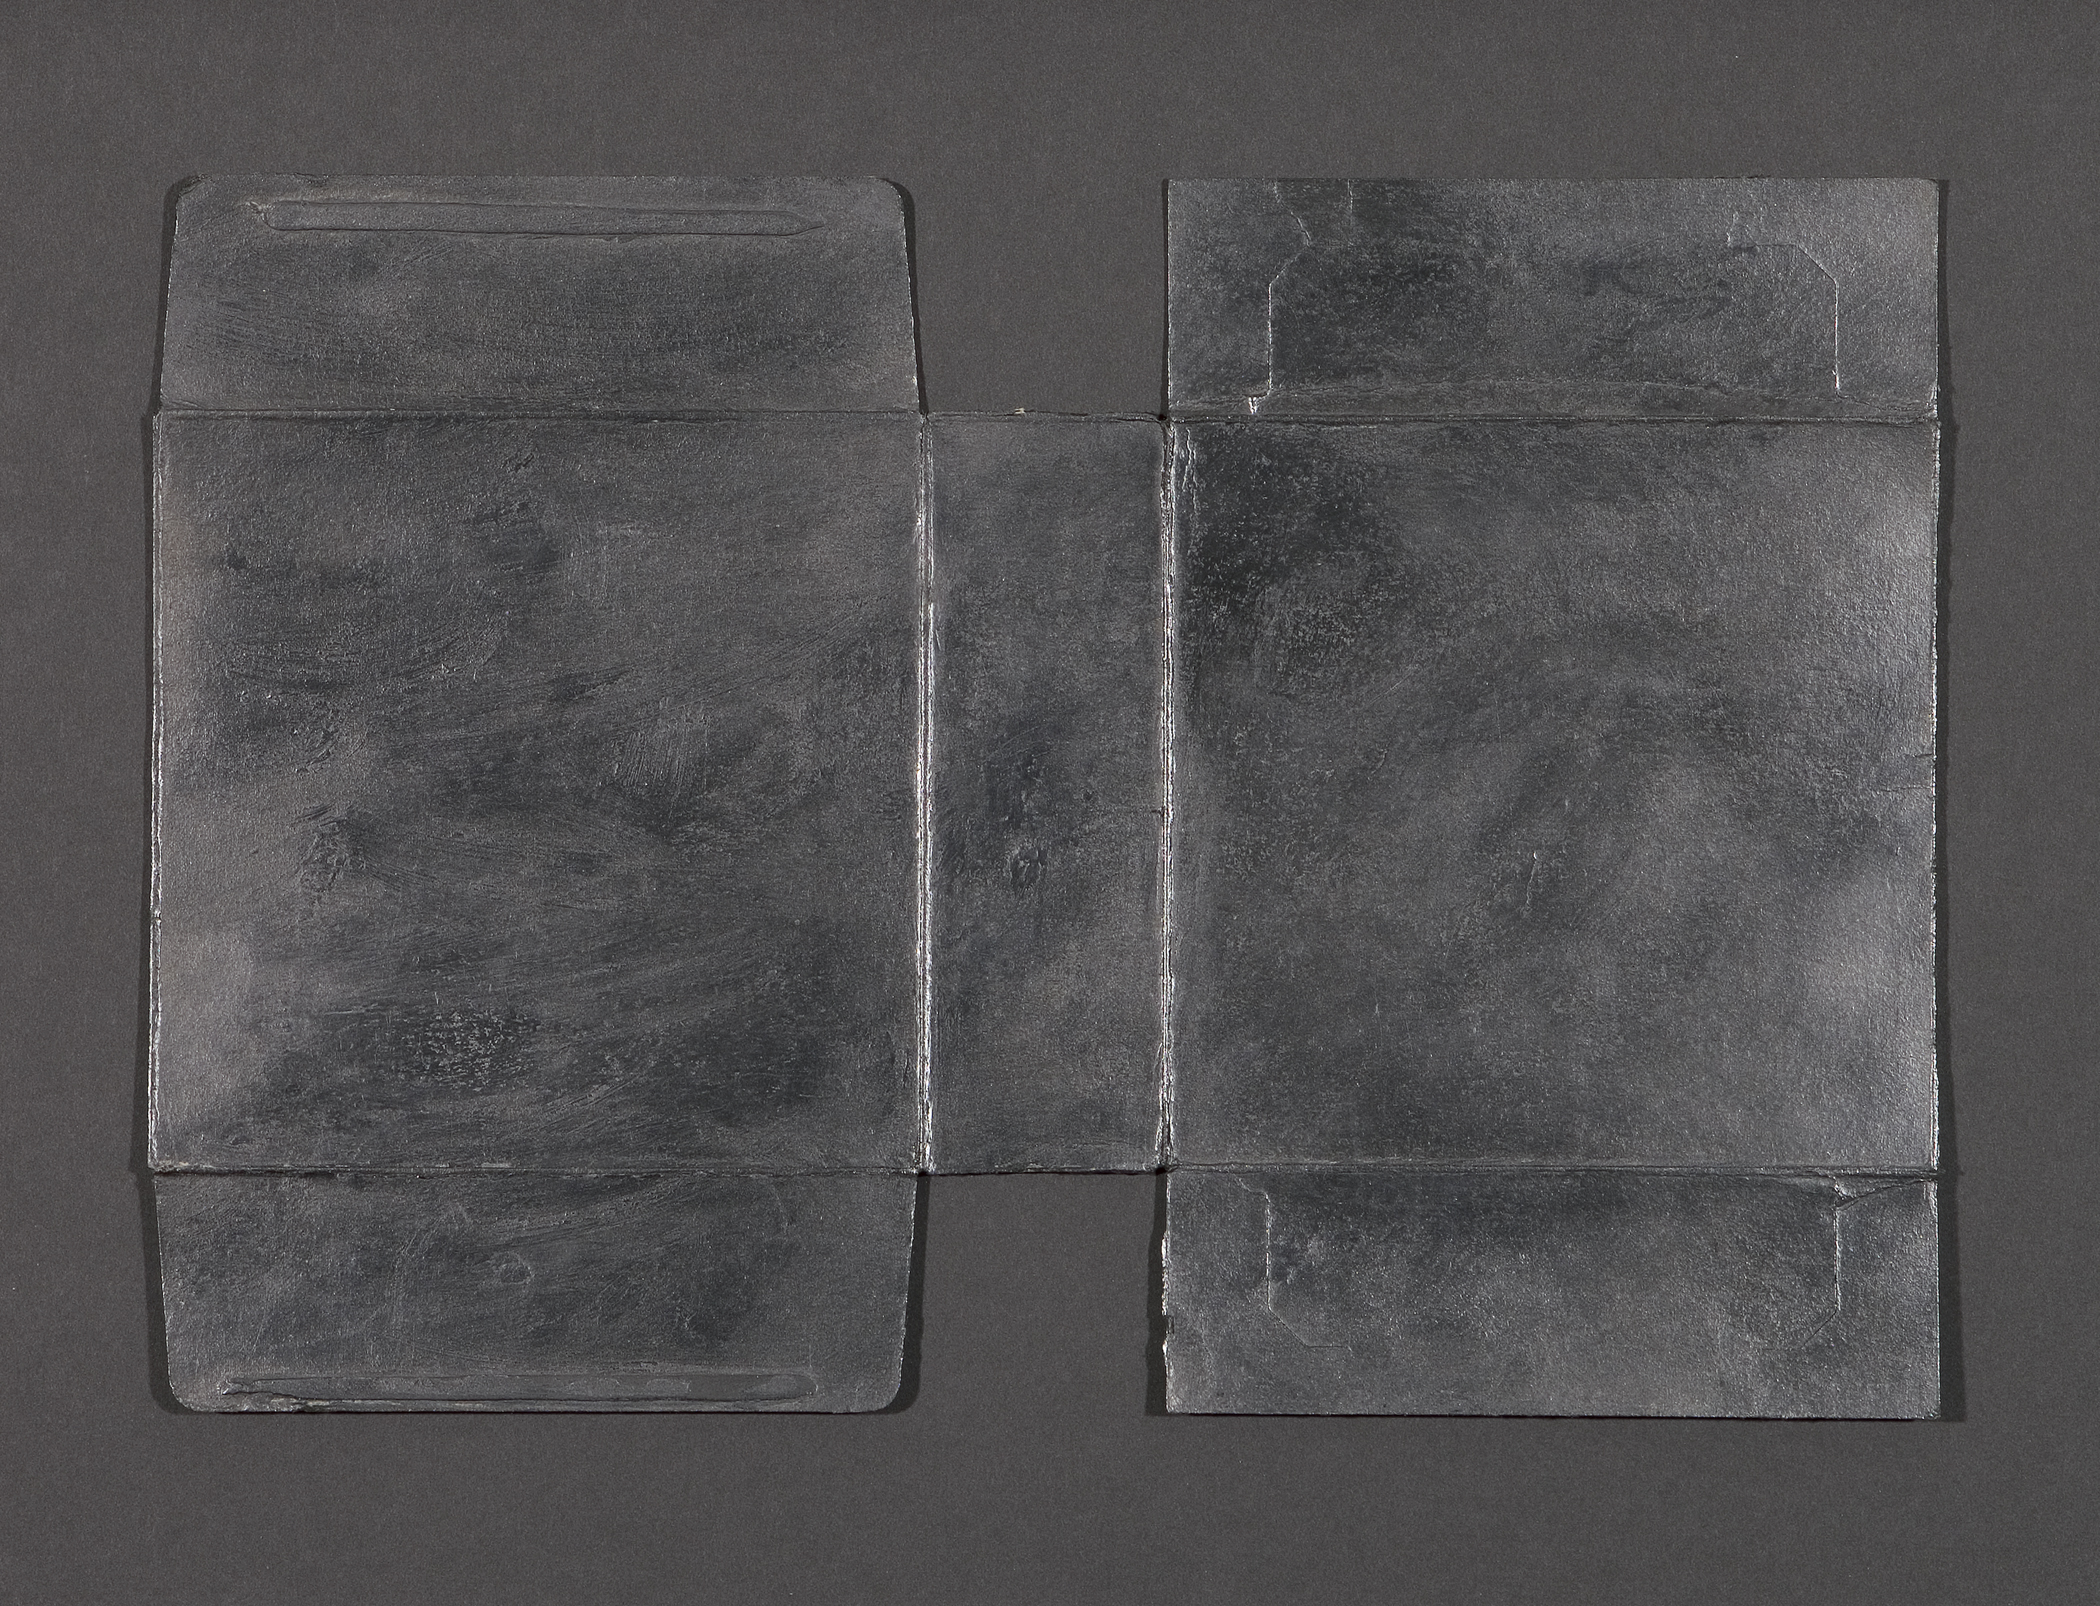 """Untitled Gesture (Couple)  Graphite powder and archival wax on cardboard, 9"""" x 13"""", 2013"""